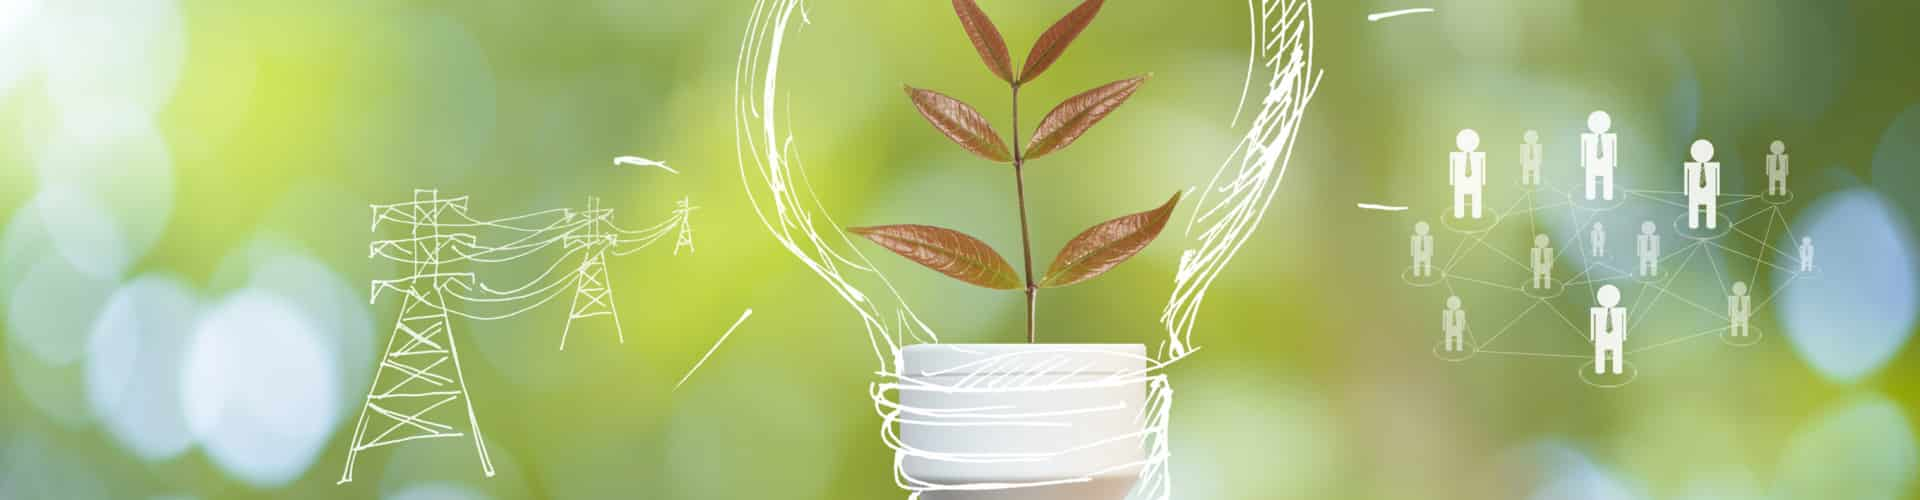 10 gestes eco-friendly à faire chez soi